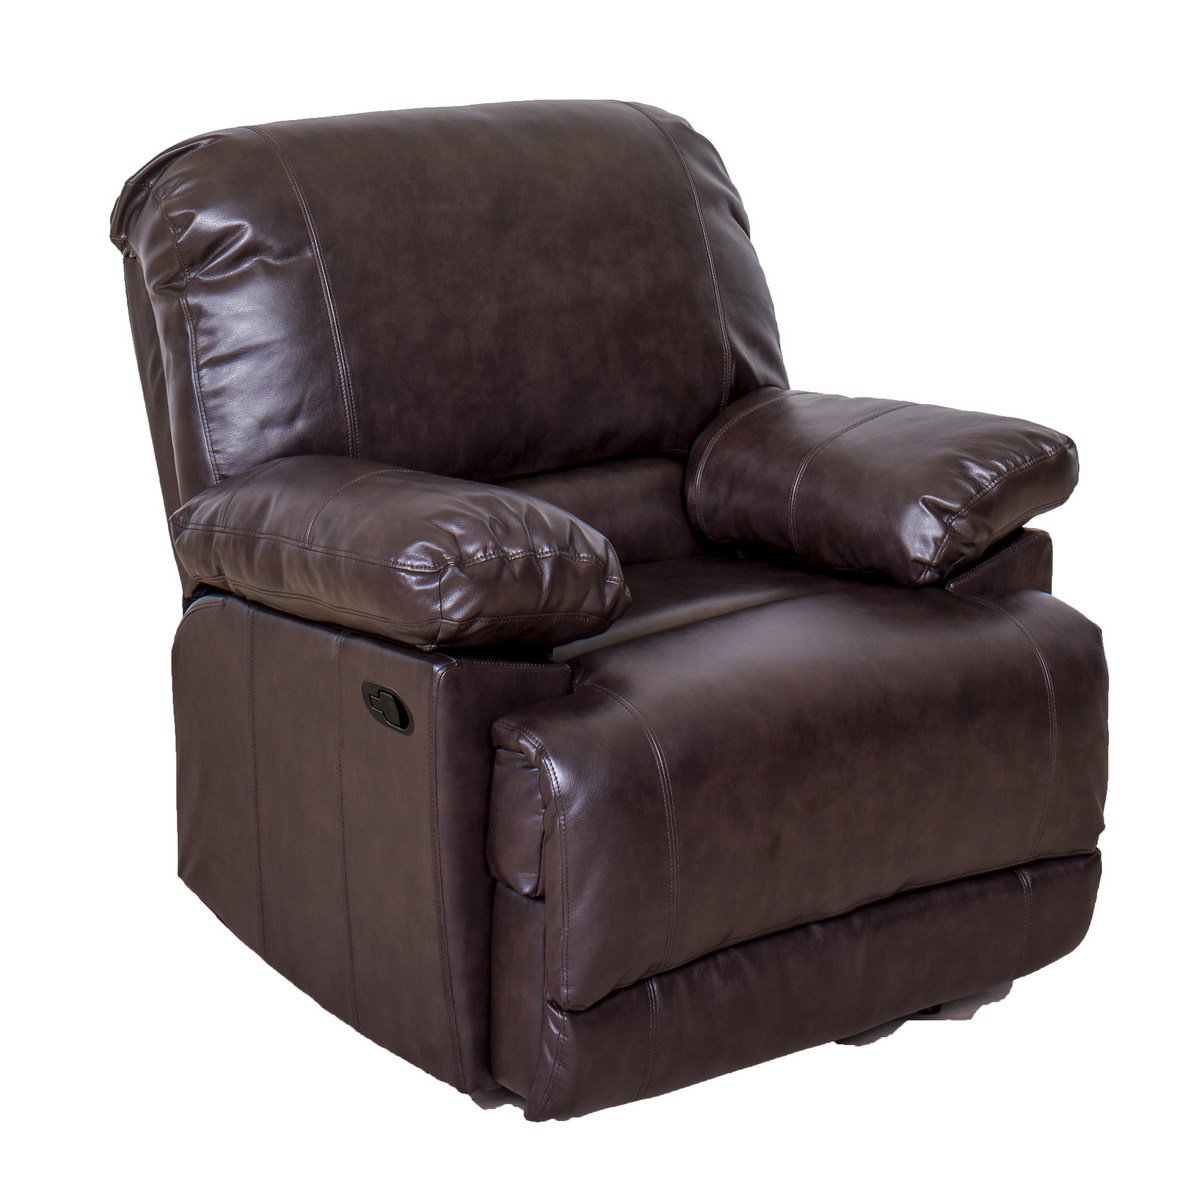 Corliving R Lea Chocolate Brown Bonded Leather Reclining Chair